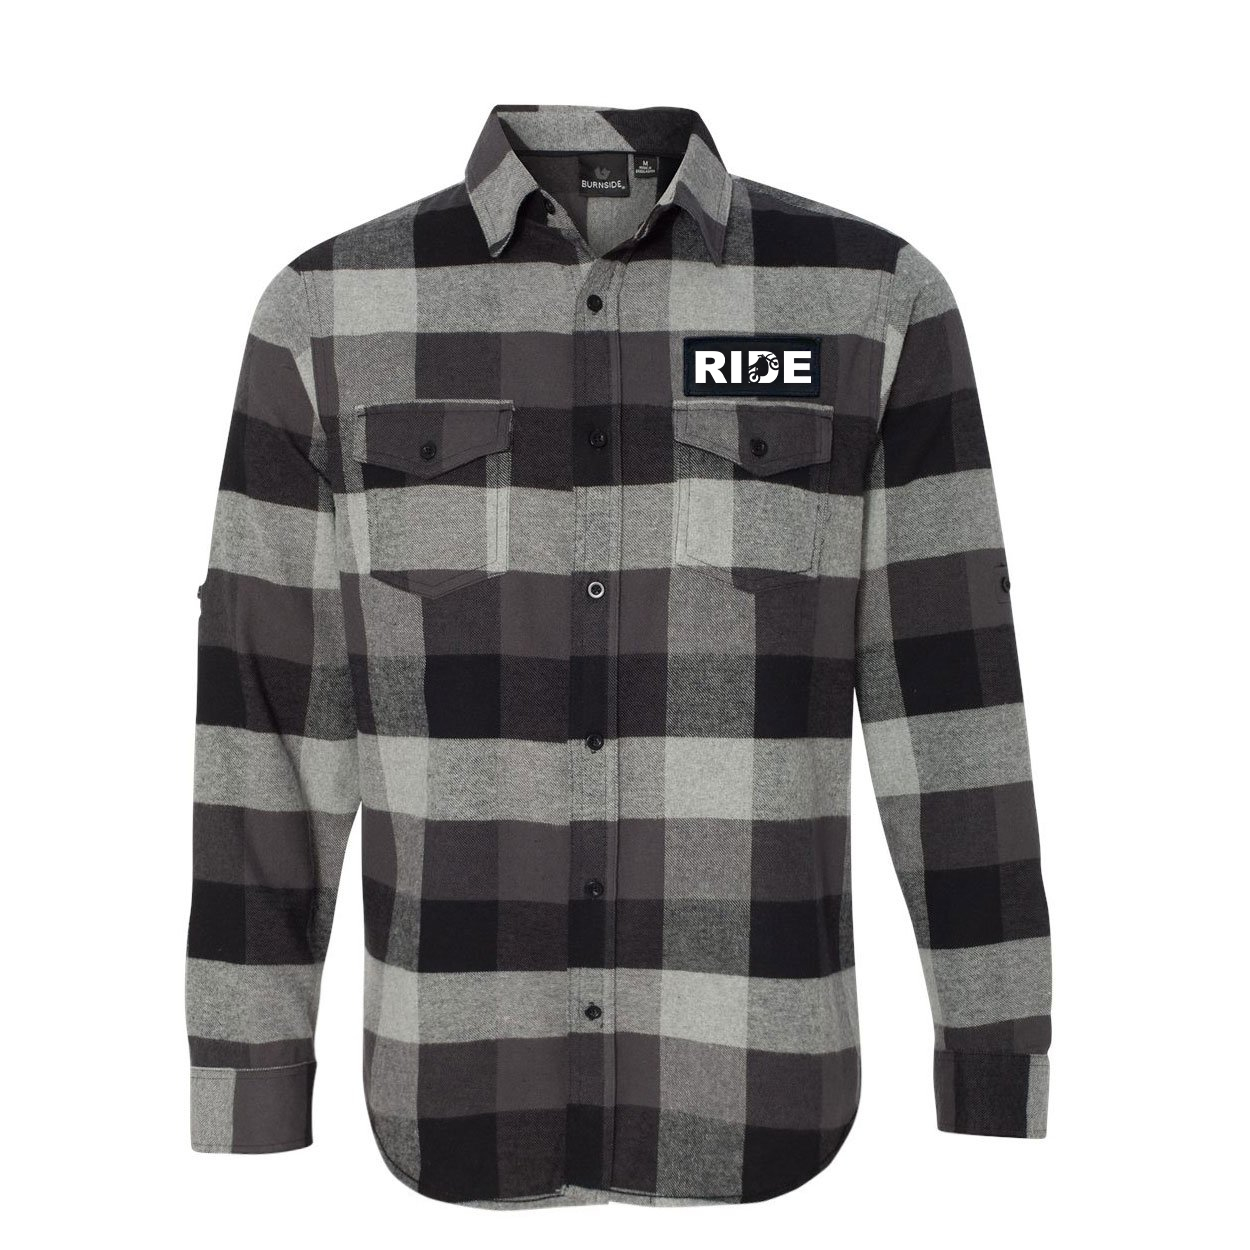 Ride Moto Logo Classic Unisex Long Sleeve Woven Patch Flannel Shirt Black/Gray (White Logo)